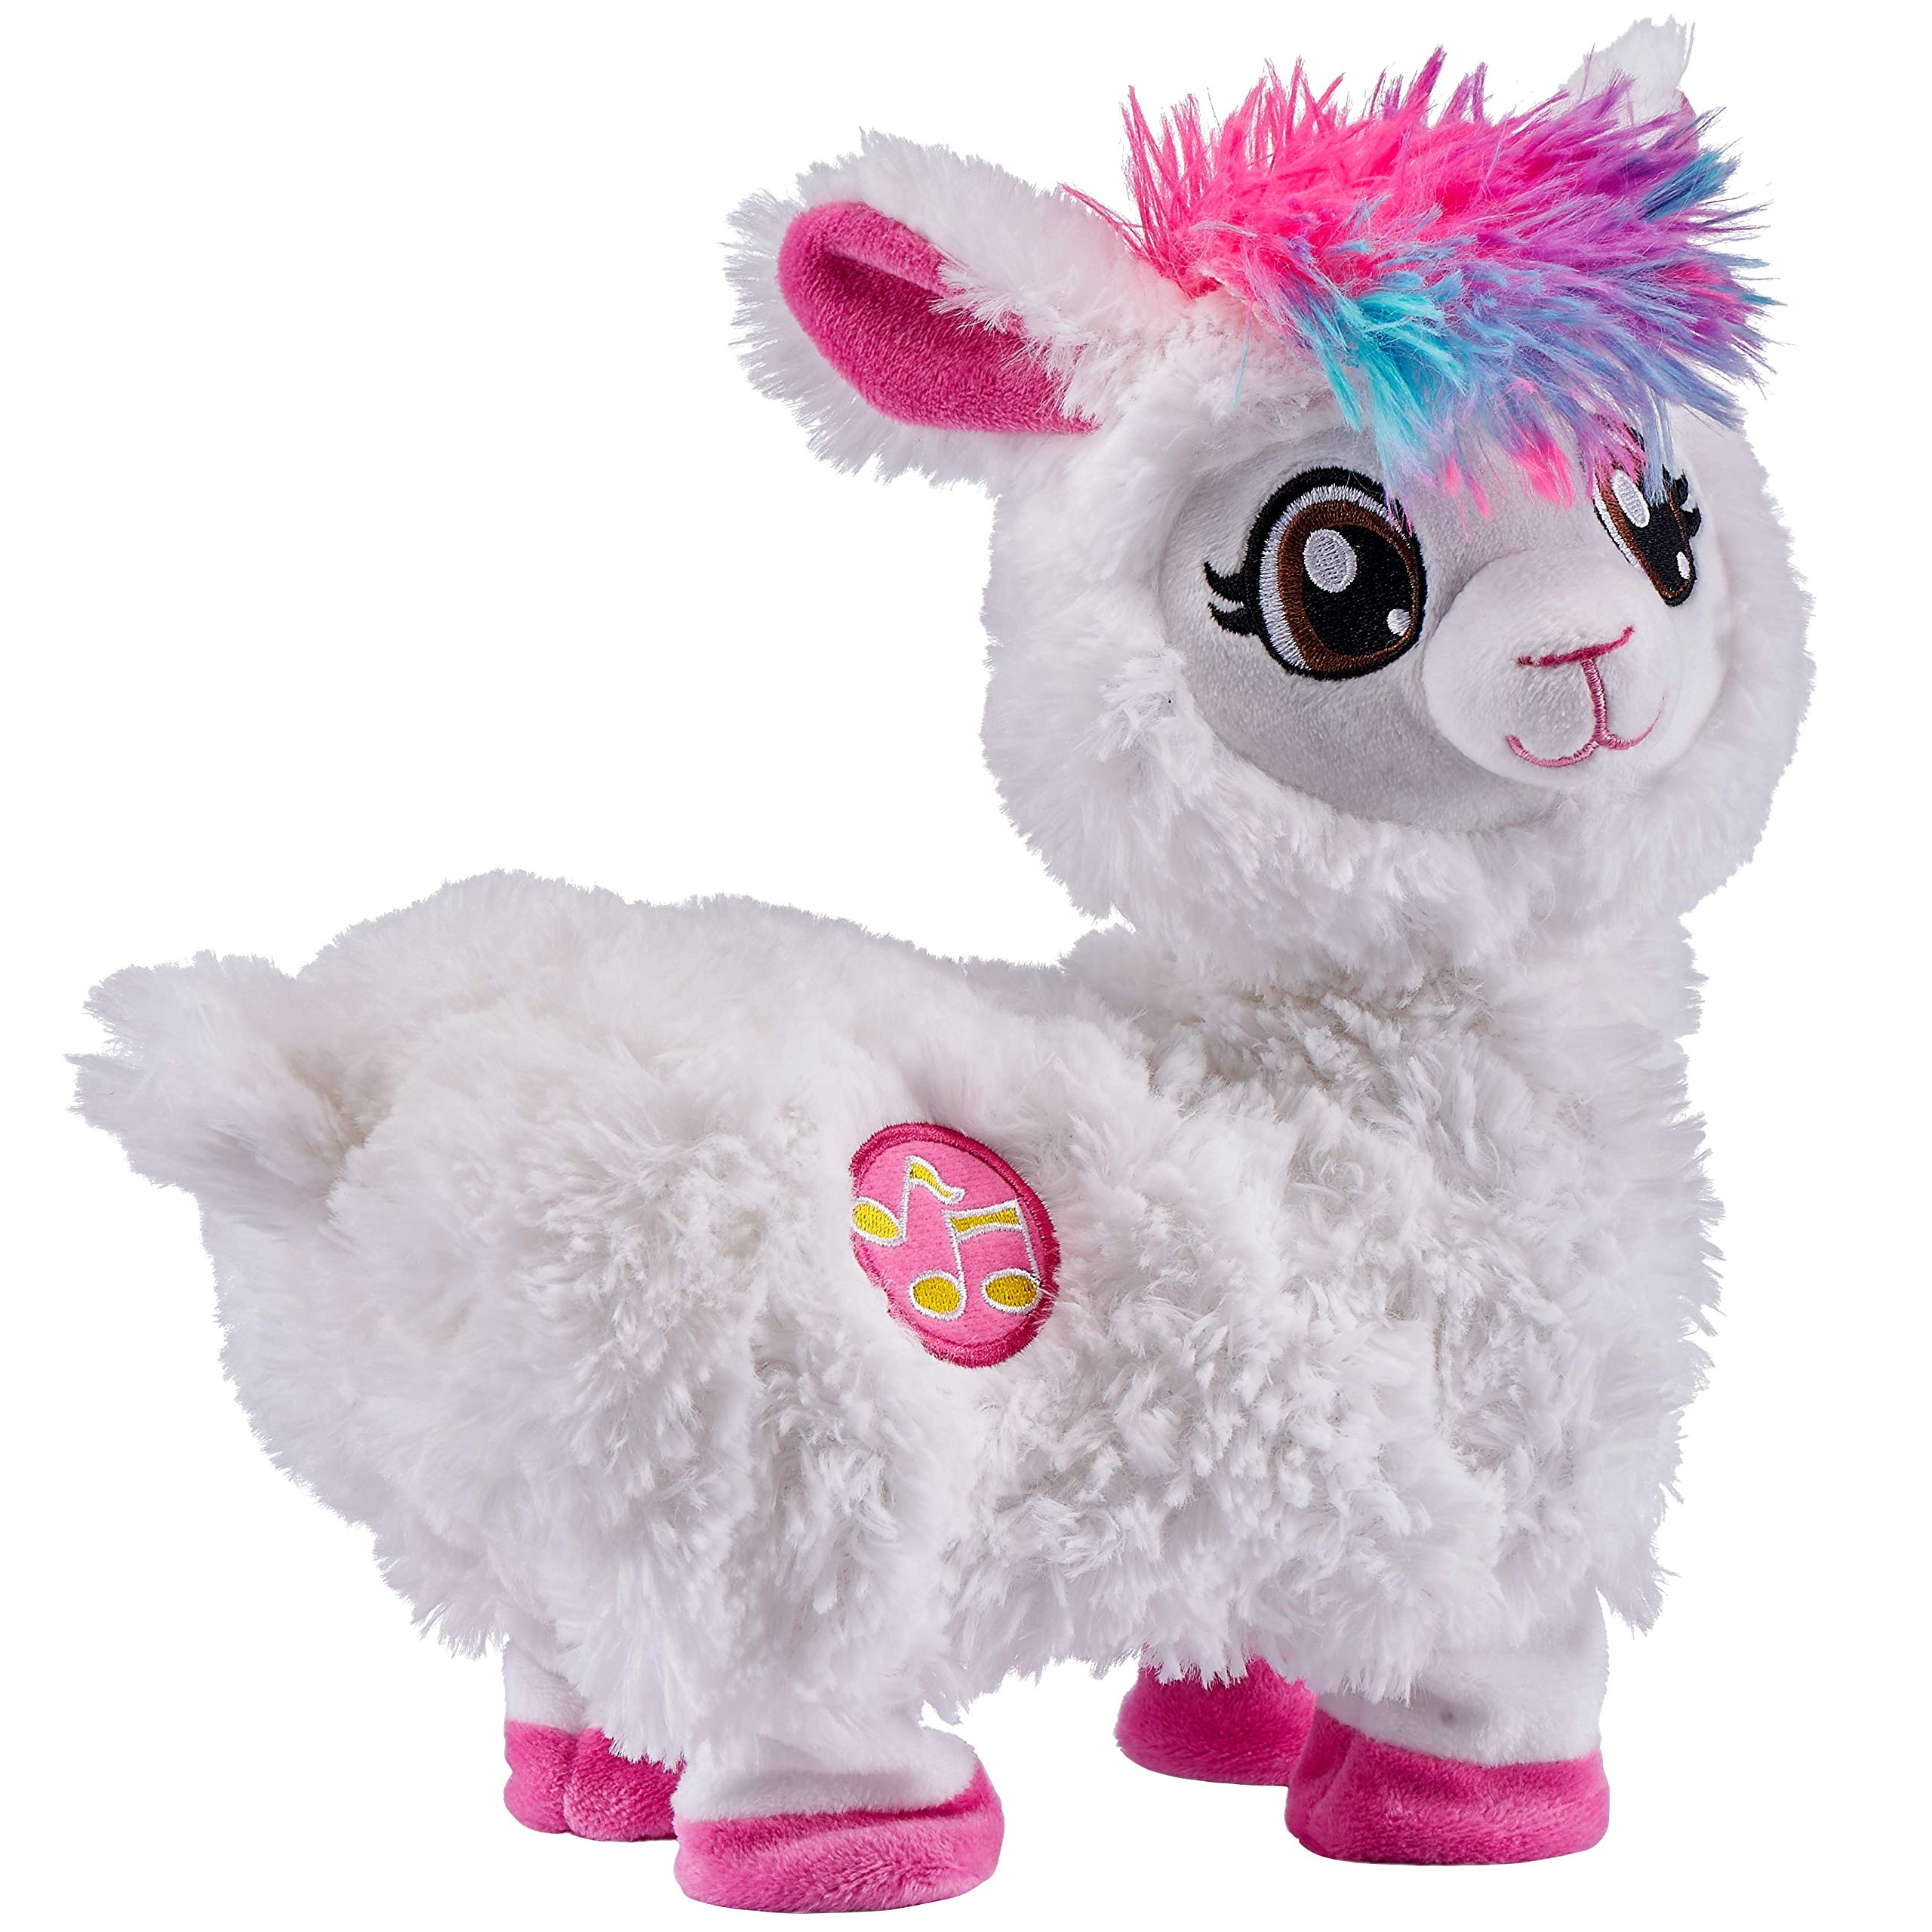 Pets Alive Boppi The Booty Shakin Llama Battery-Powered Dancing Robotic Toy by Zuru by Pets Alive (Image #9)